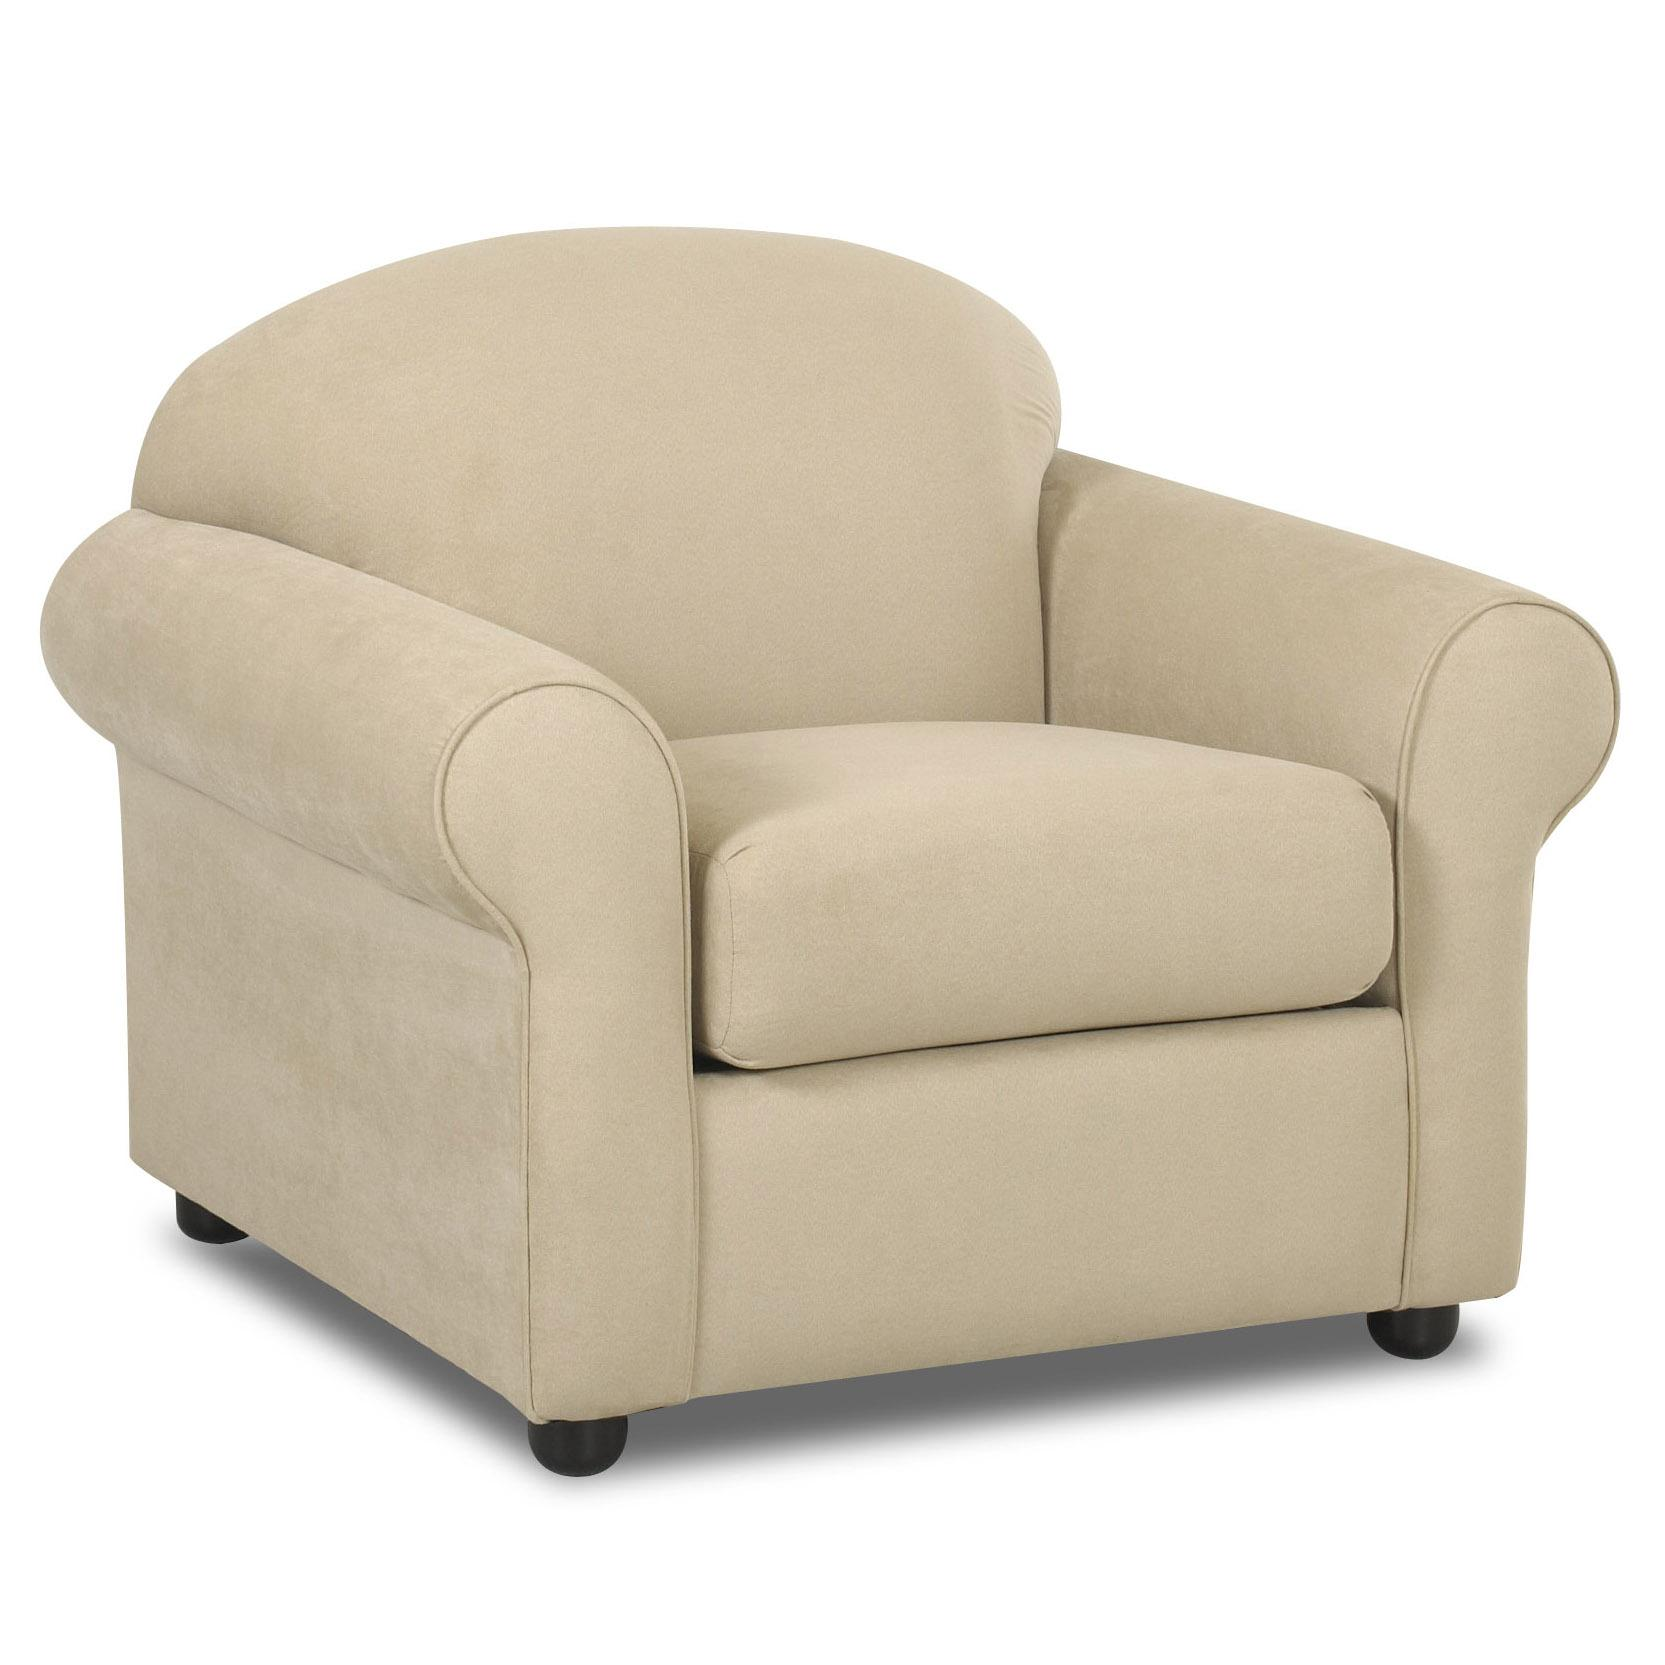 Klaussner Possibilities Low Profile Chair